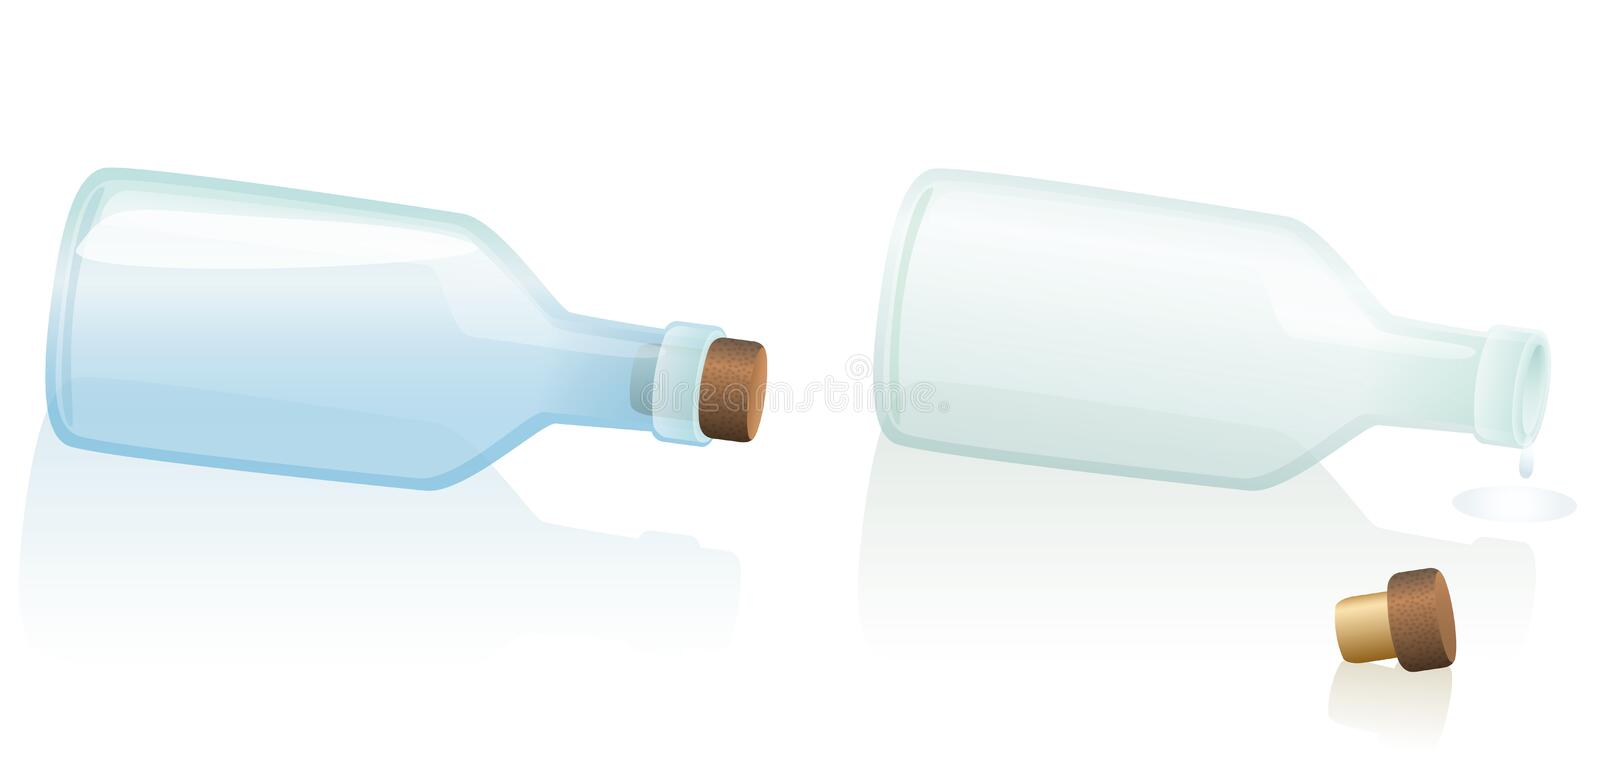 Lying Fallen Bottle Corked Uncorked. Horizontal lying, fallen bottles - one is filled with water or any other clear liquid, the other one is uncorked and empty stock illustration